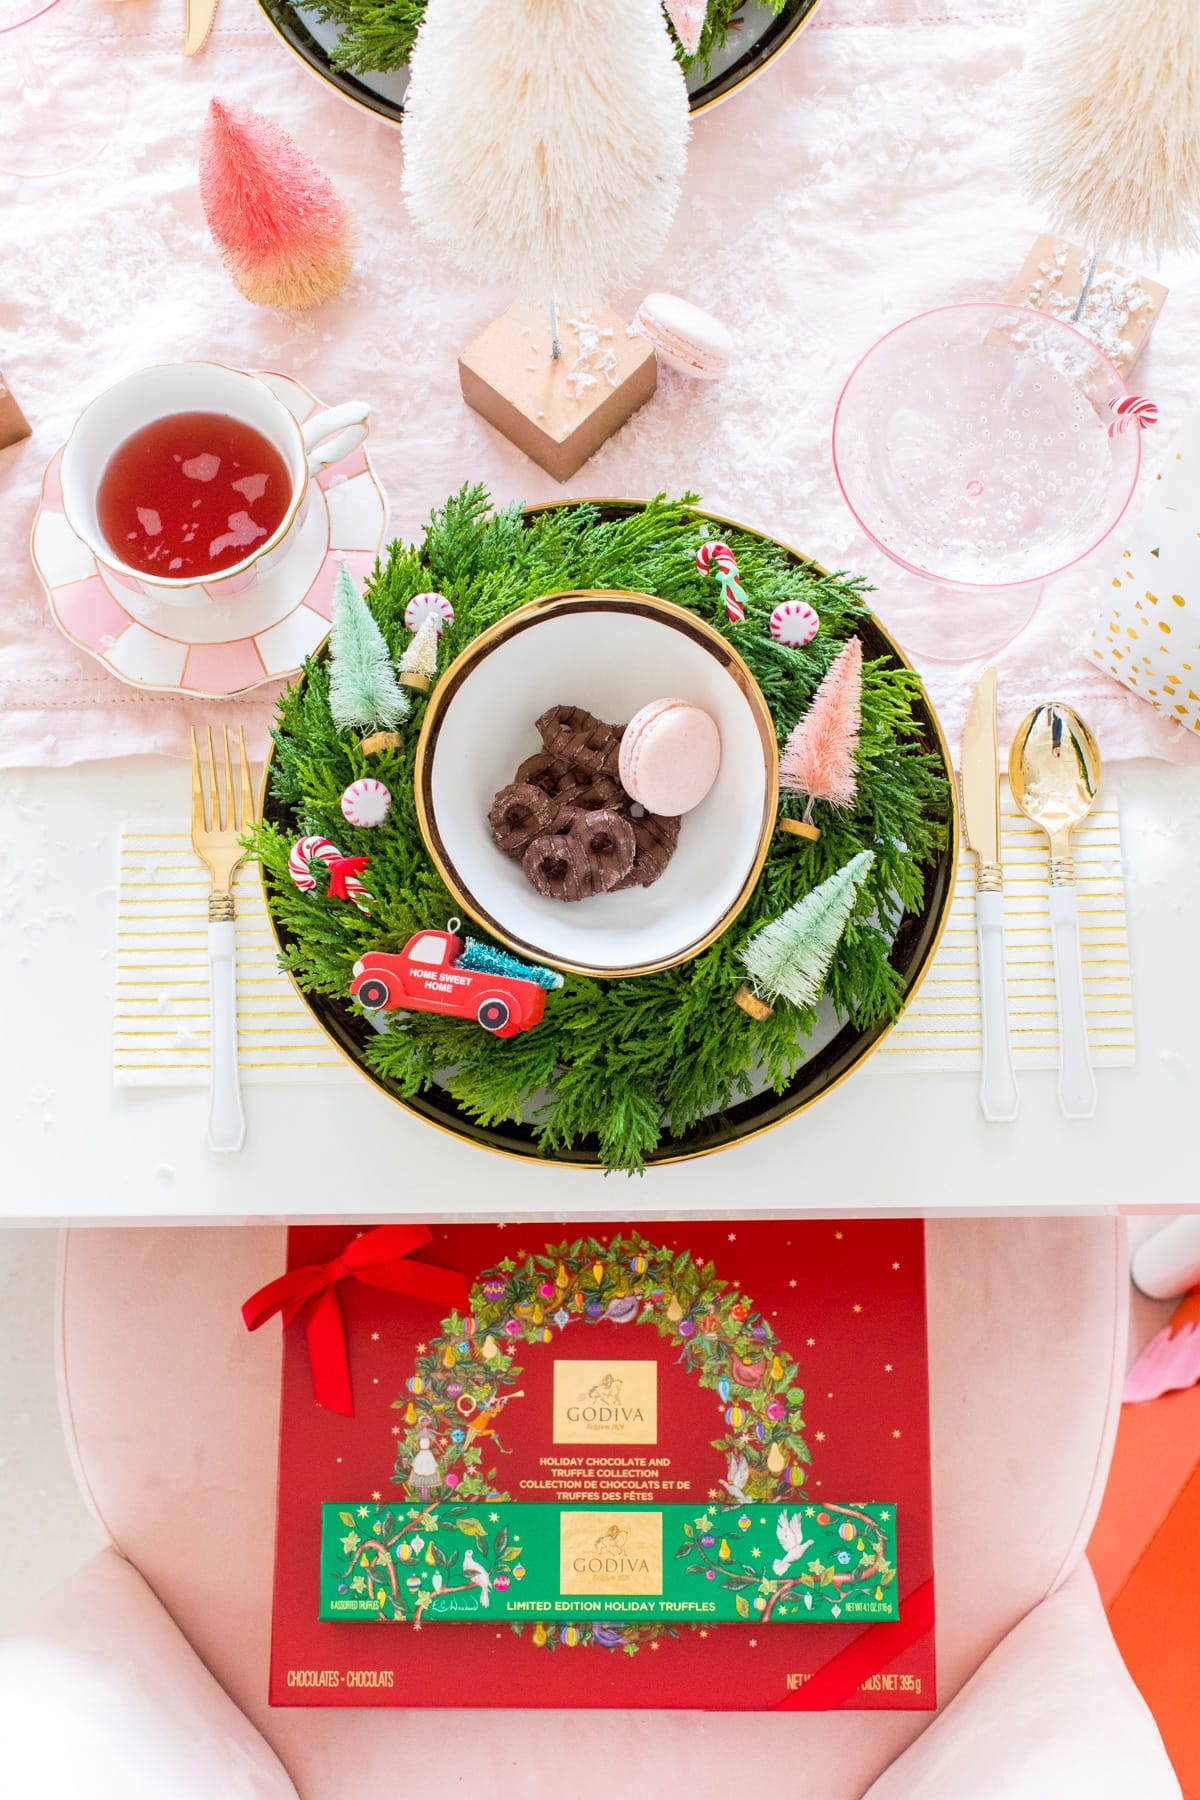 Holiday Table Setting Hostess Gift Guide by Houston lifestyle blogger Ashley Rose of Sugar and Cloth -- #giftguide #chirstmas #entertaining #holidayentertaining #presents